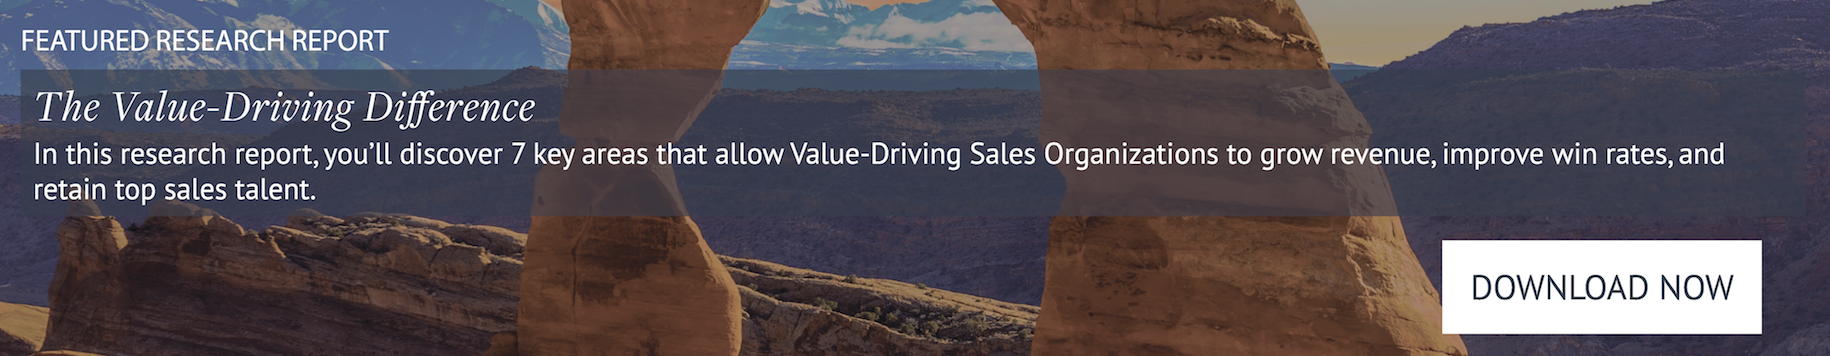 The Value-Driving Sales Organization